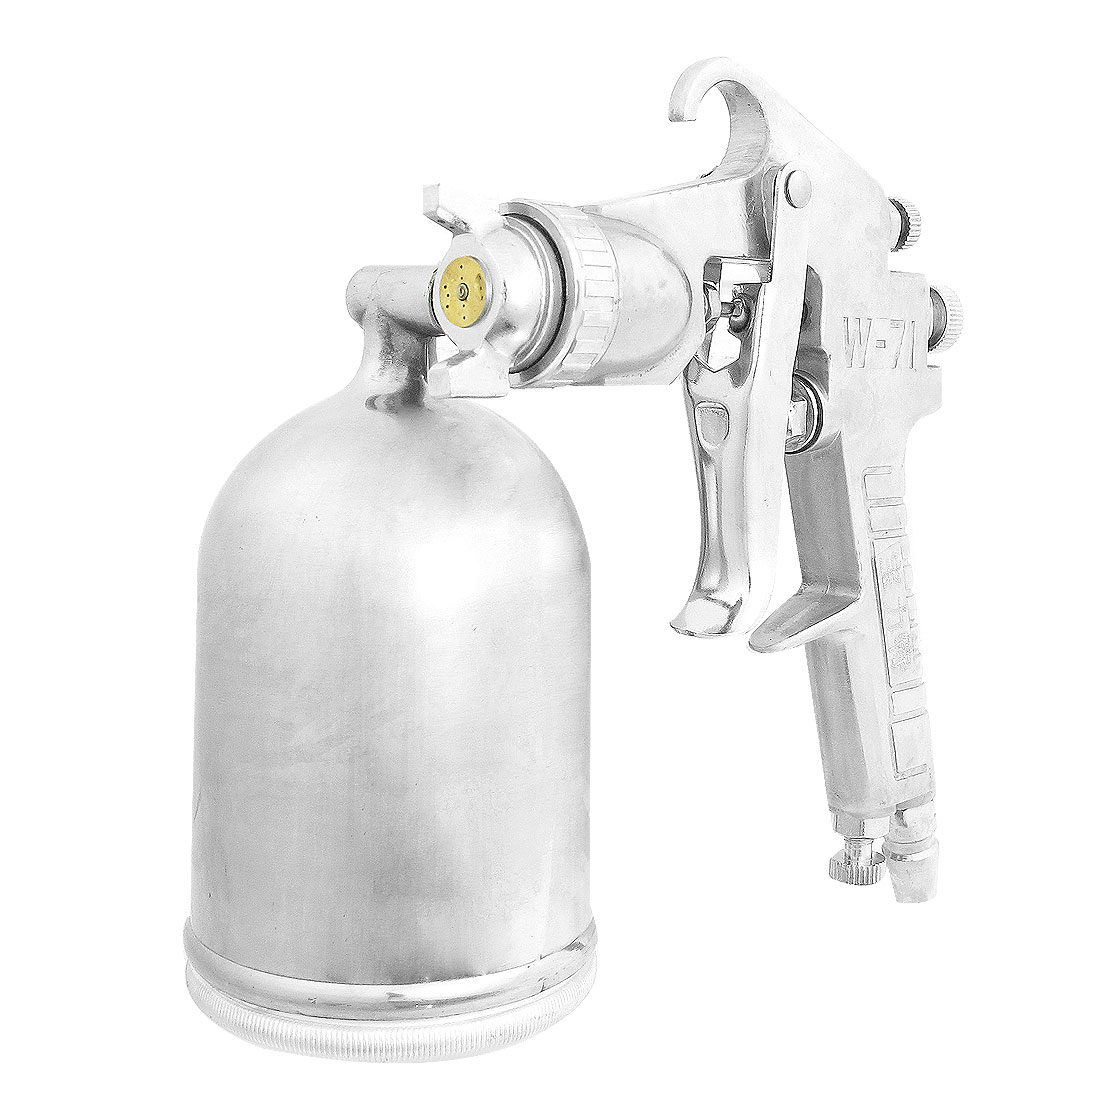 G1/4 Joint Thread 400cc Cup Spray Gun Painting Tool 1.5mm Nozzle